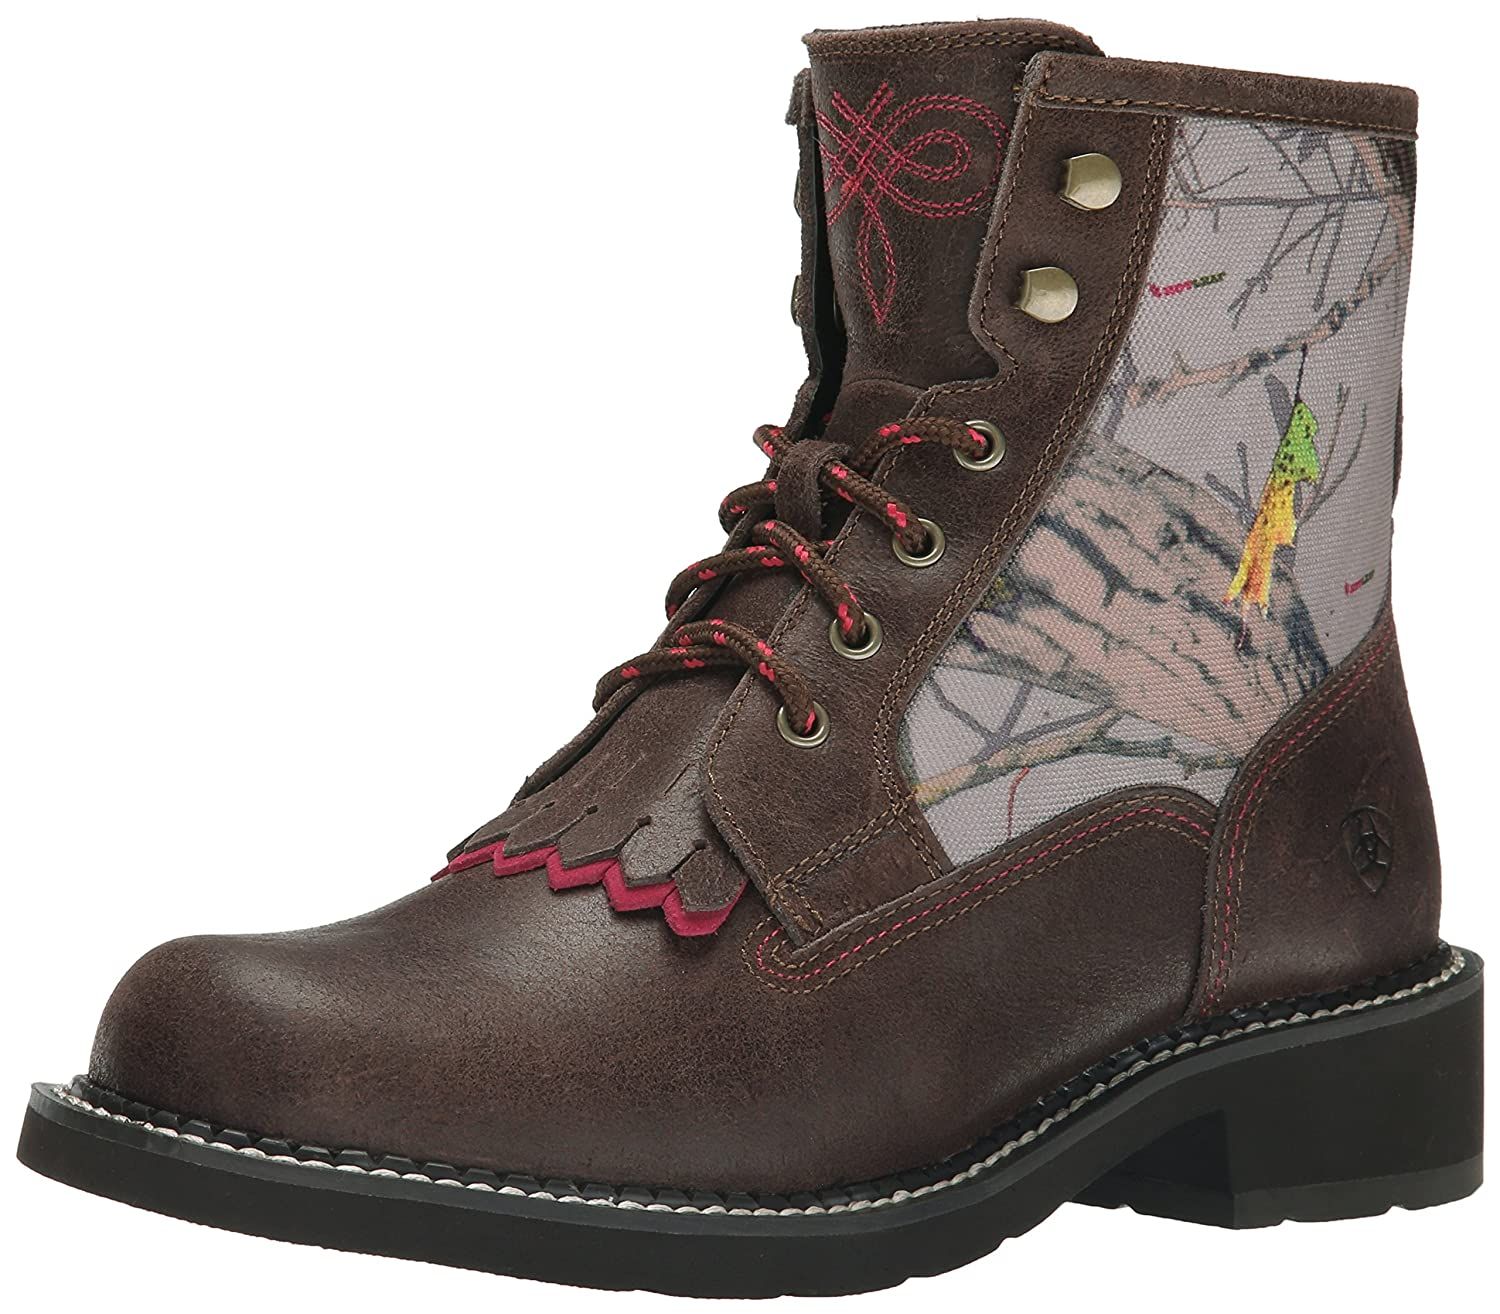 0bf72b0a317 Ariat Women's Fatbaby Heritage Lacer Western Boot, Fireside, 8.5 M US |  $328 - Buy today!